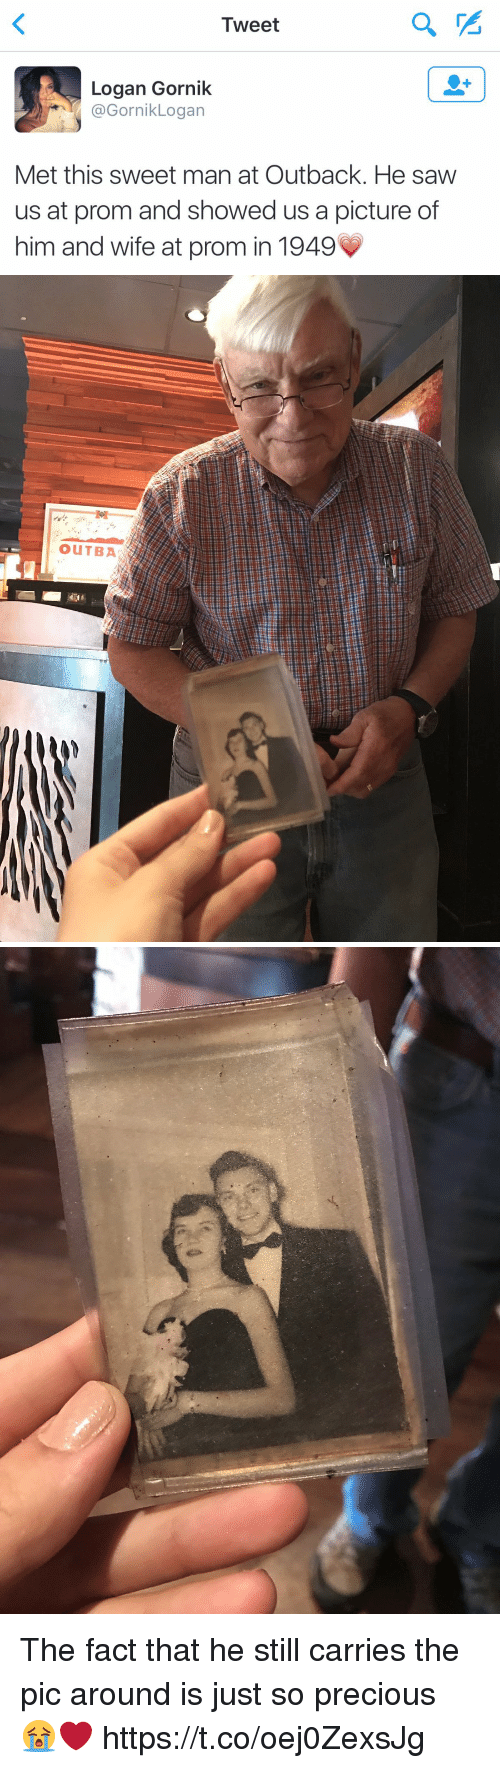 Funny, Precious, and Saw: Tweet  Logan Gornik  @Gornik Logan  Met this sweet man at Outback. He saw  us at prom and showed us a picture of  him and wife at prom in 1949   OuTBA The fact that he still carries the pic around is just so precious 😭❤️ https://t.co/oej0ZexsJg